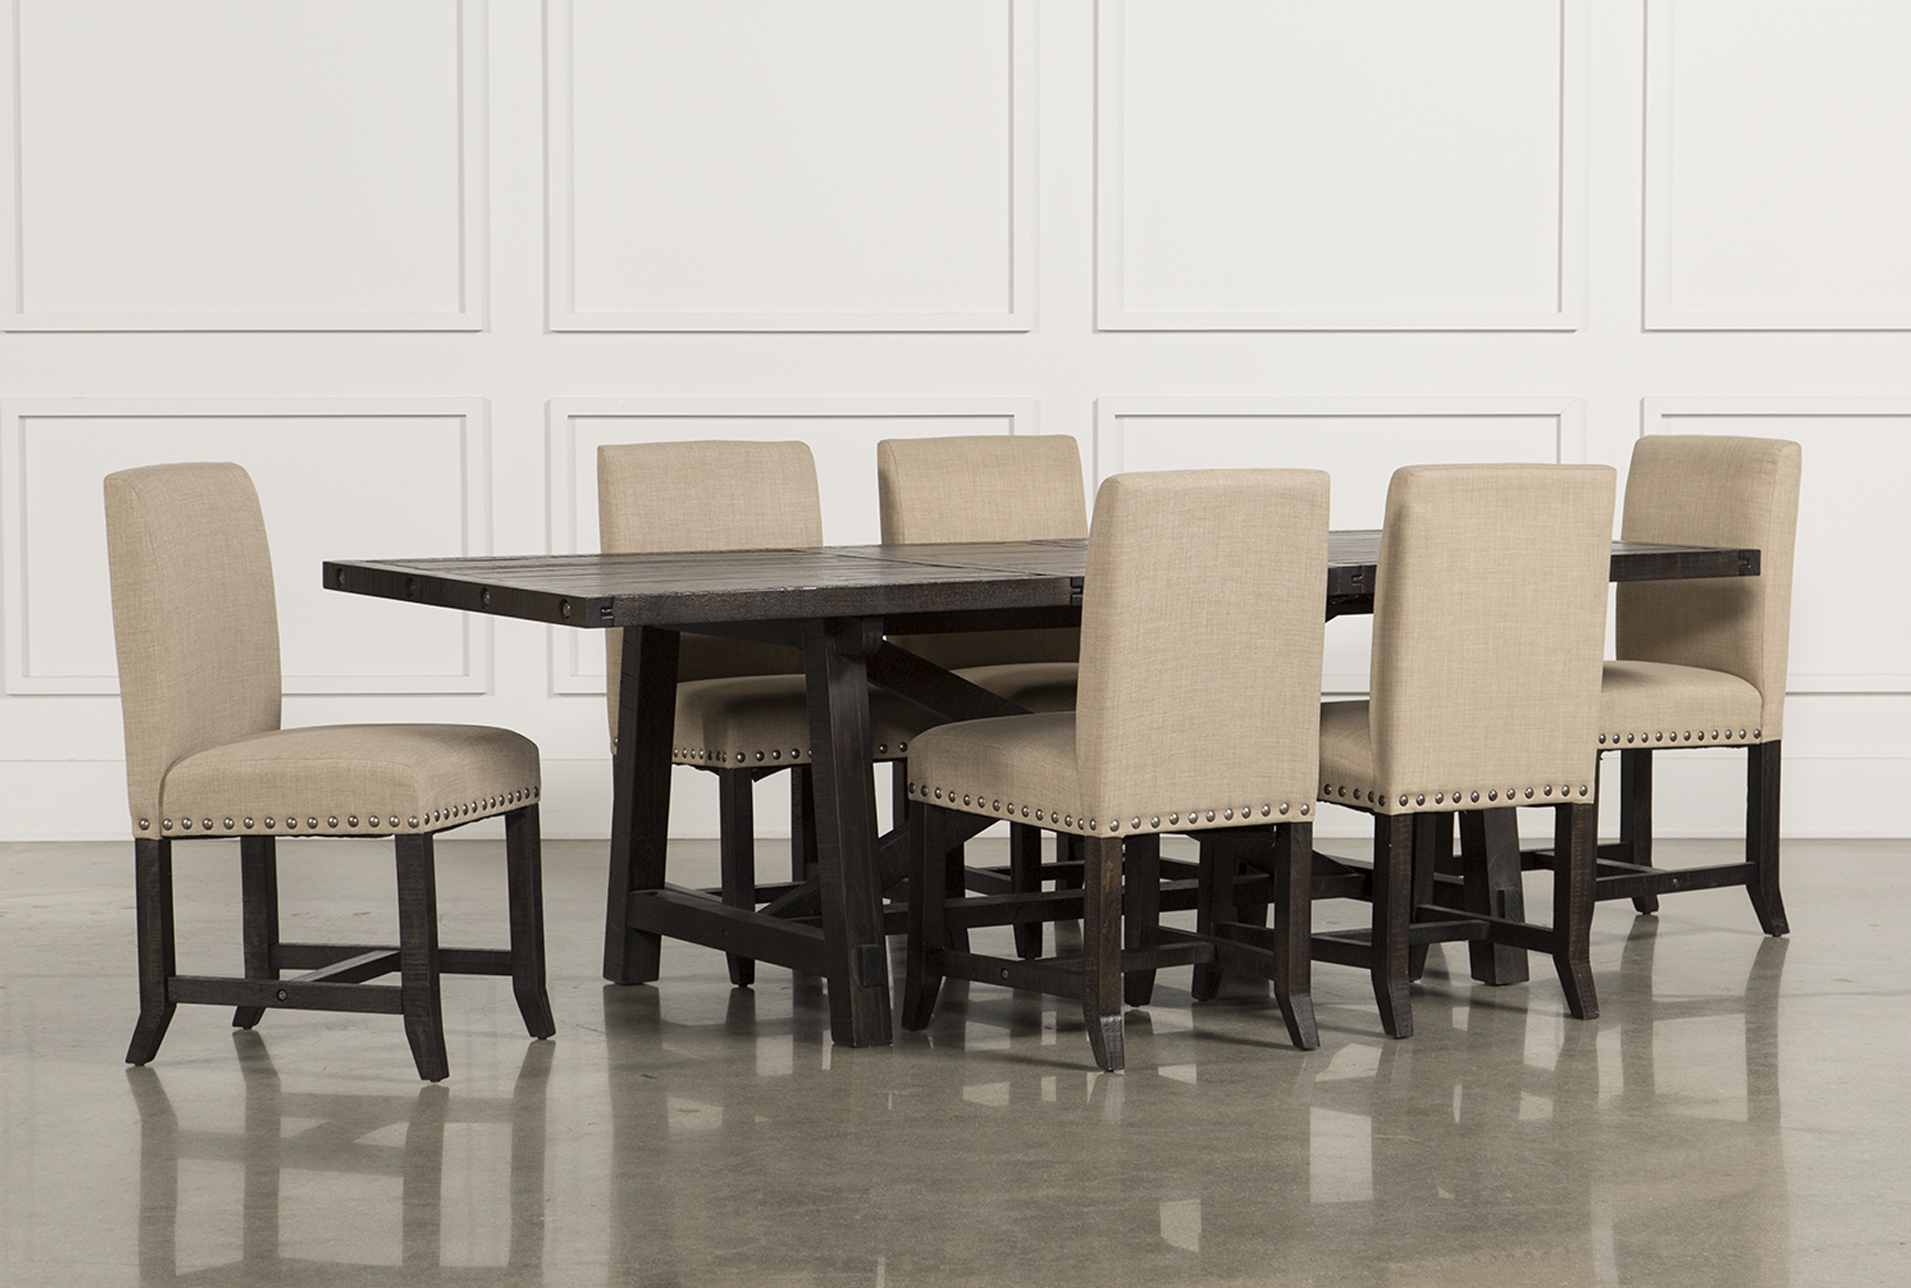 Jaxon 7 Piece Rectangle Dining Set W/Upholstered Chairs   360